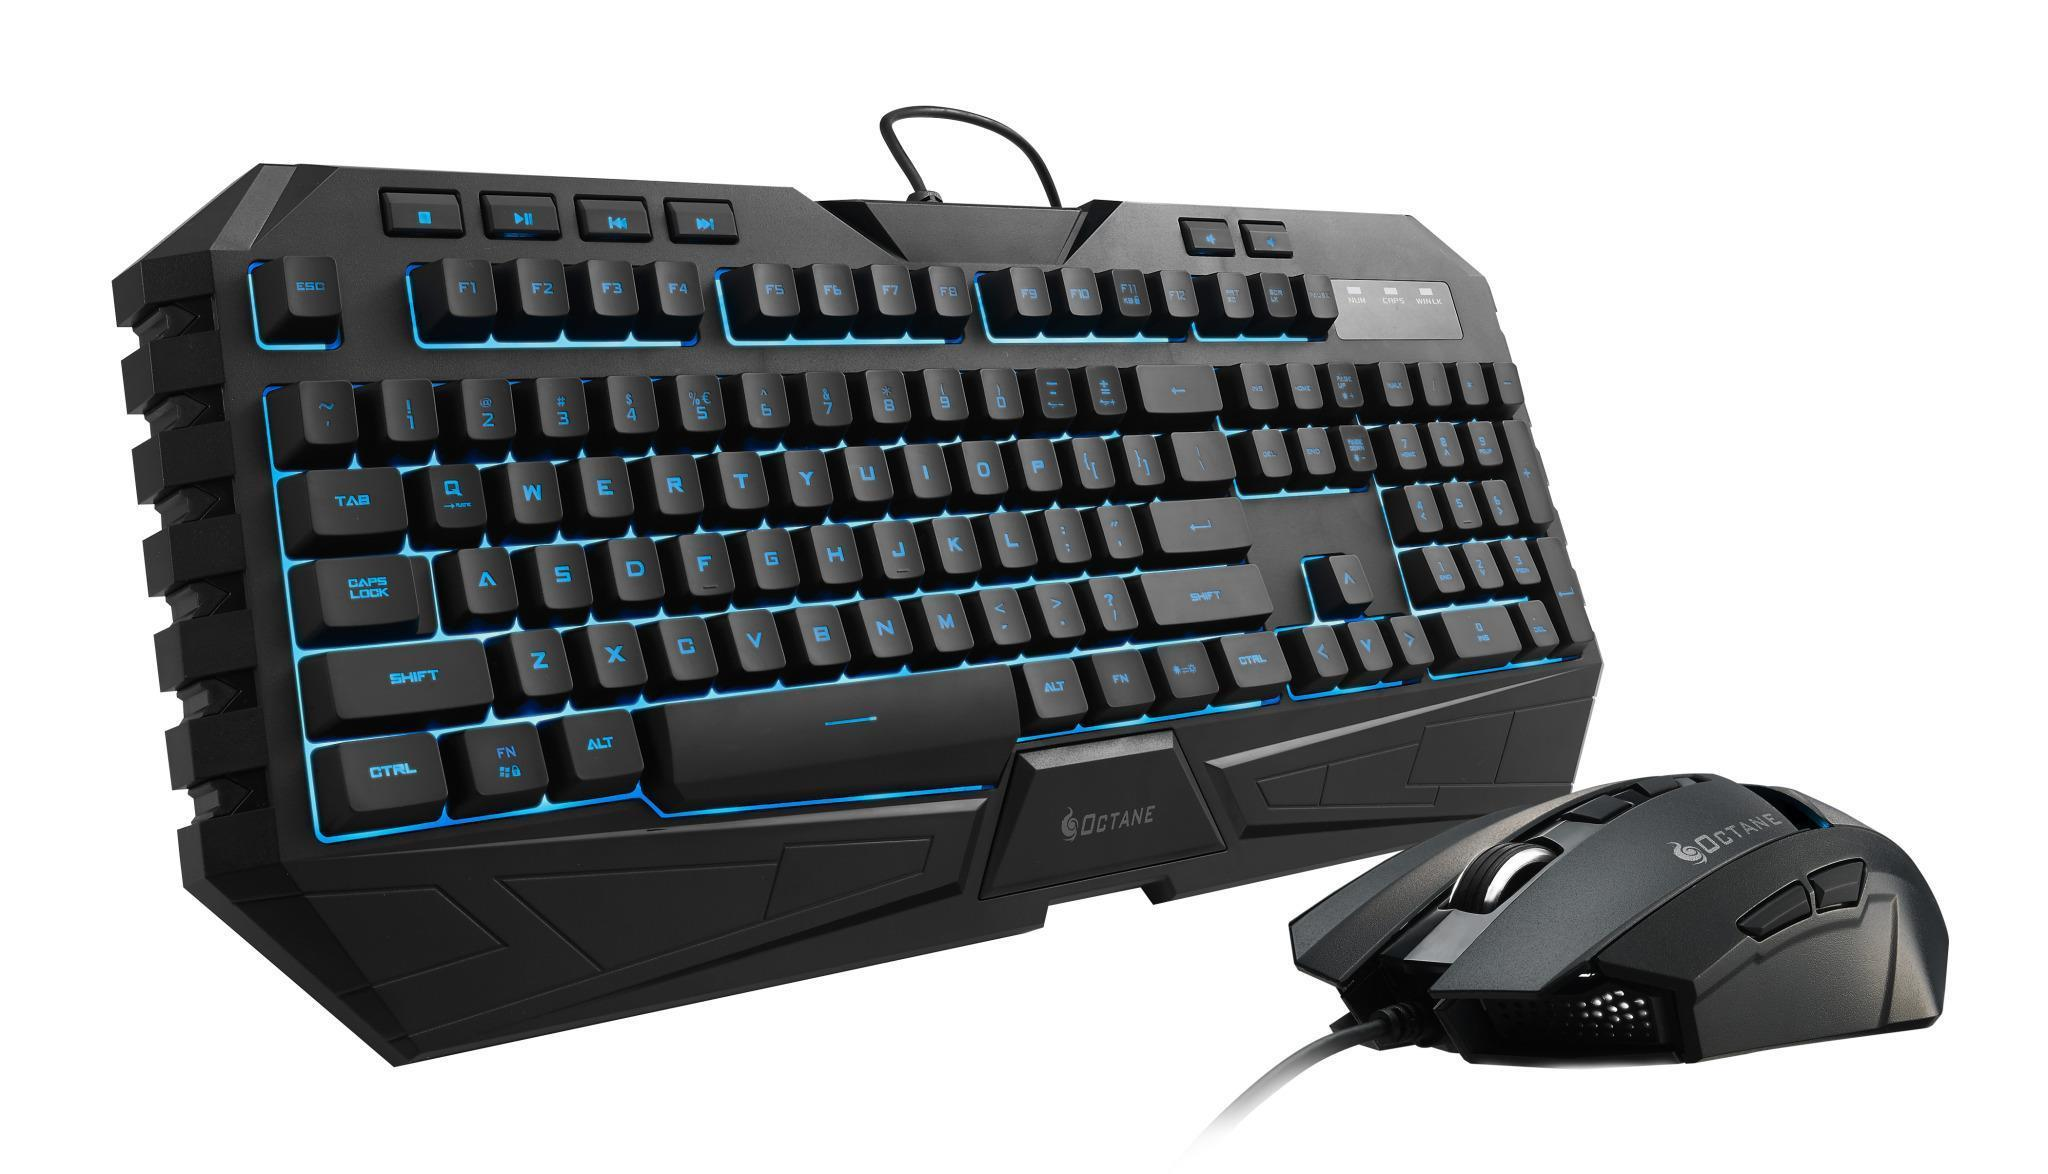 Cooler Master CM Storm Octane Gaming Gear Keyboard & Mouse Combo Bundle